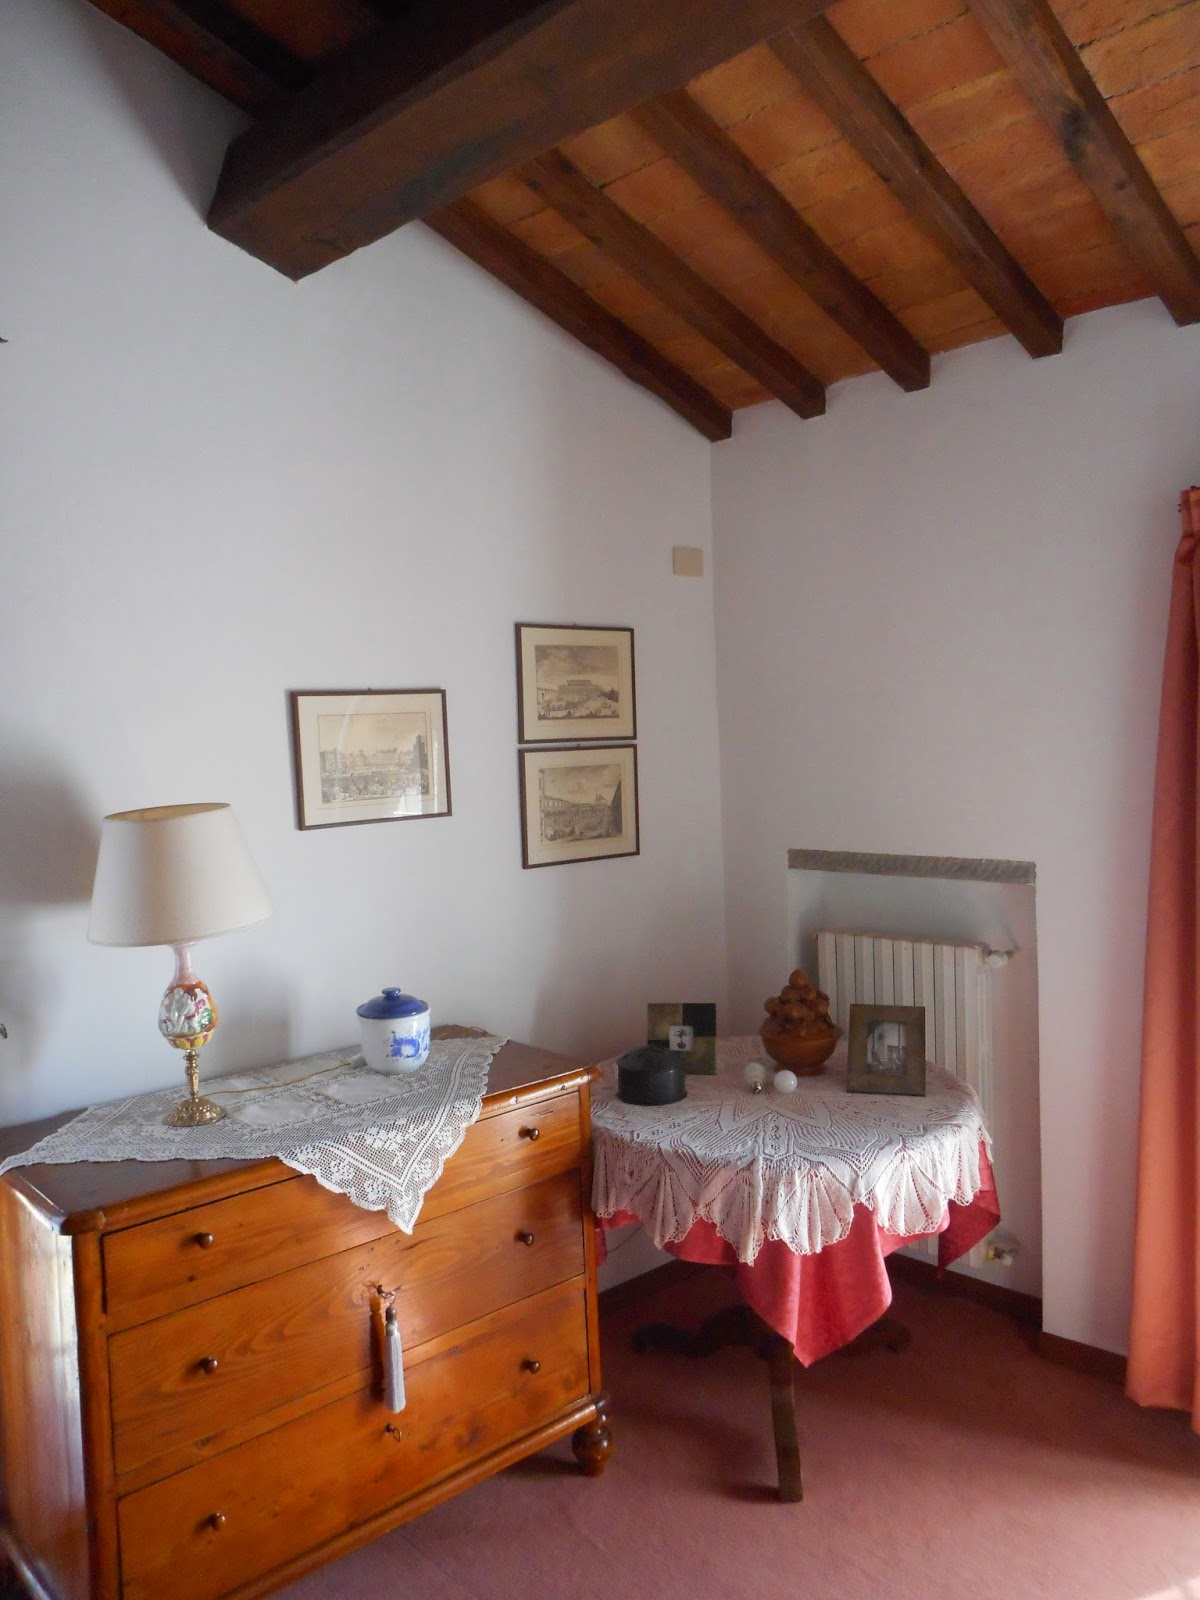 Rooms for rent in a villa in Chianti